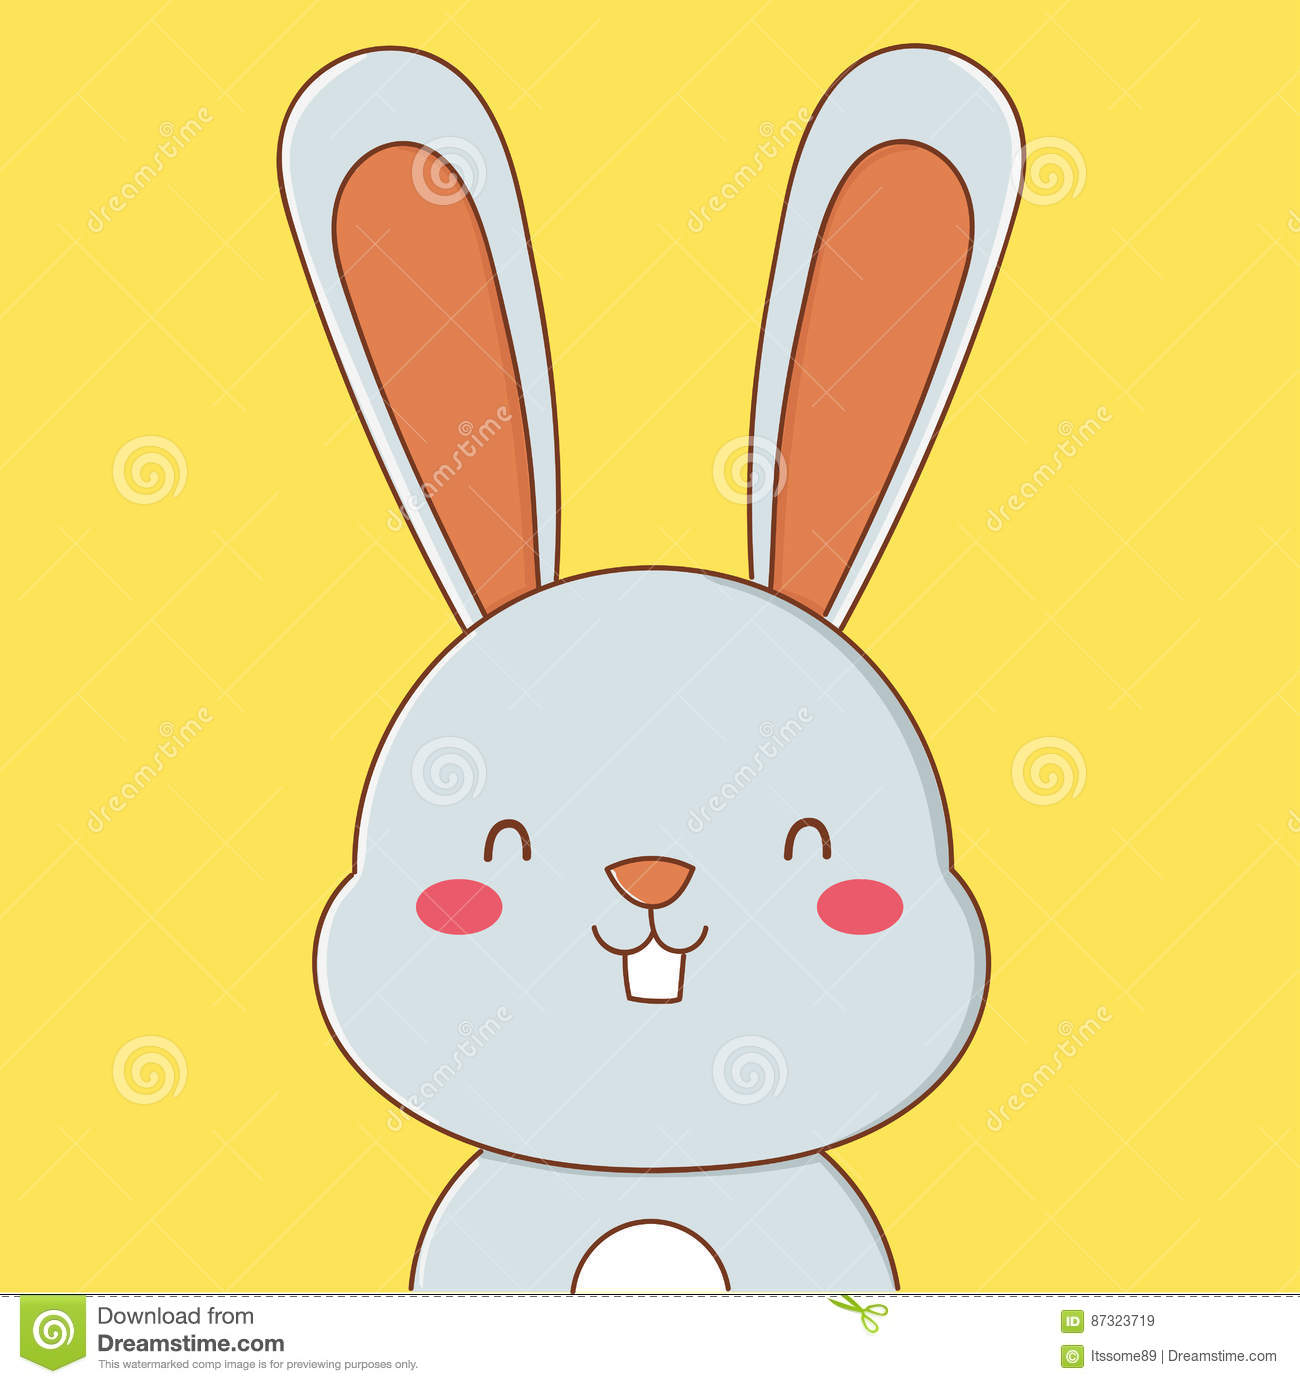 Must see Wallpaper Cartoon Smile - smiling-cute-blue-bunny-yellow-wallpaper-smile-to-you-87323719  Gallery_392711   .jpg